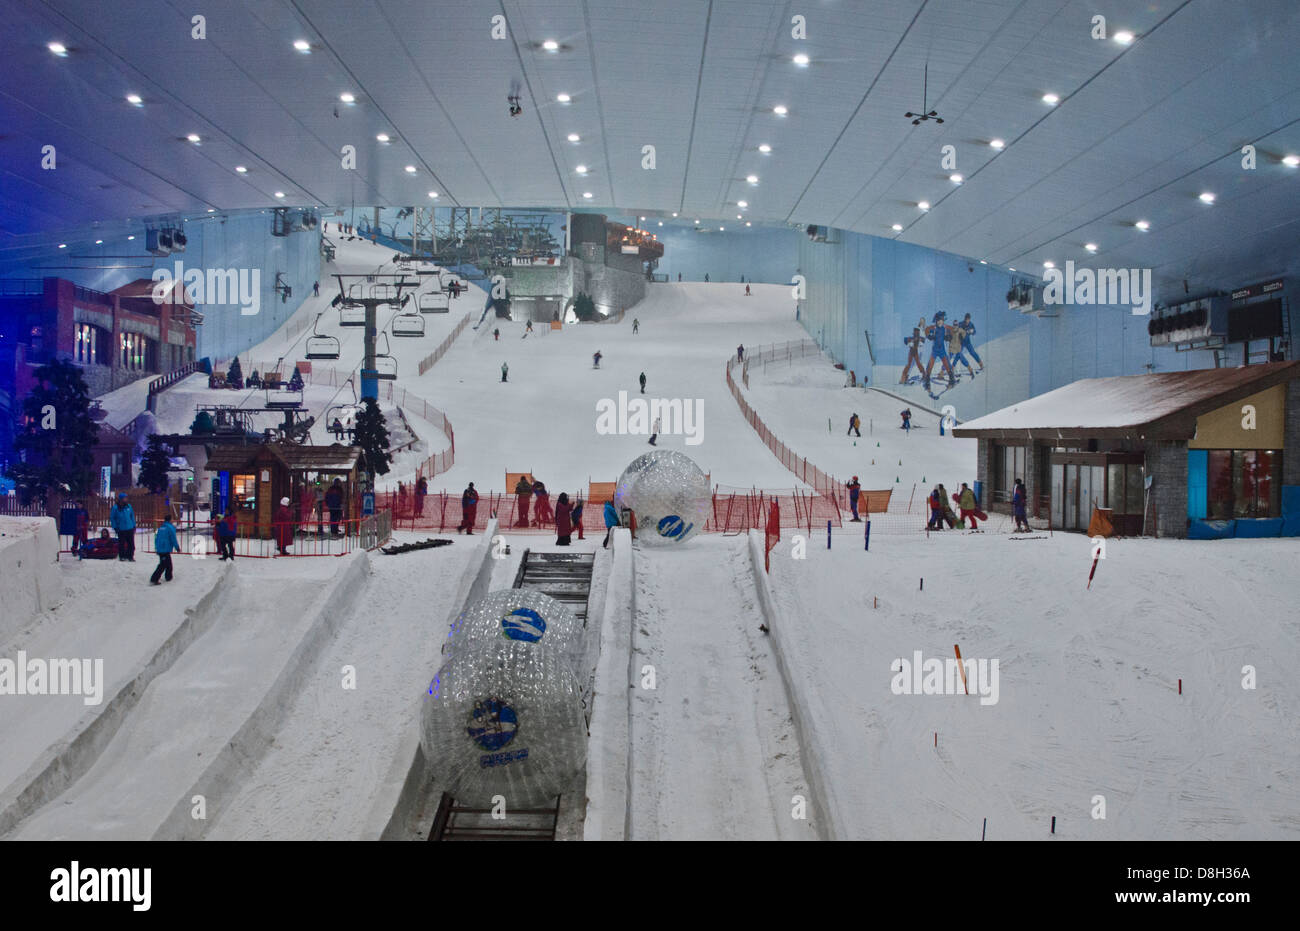 only indoor ski slope resort in the world at the mall of the